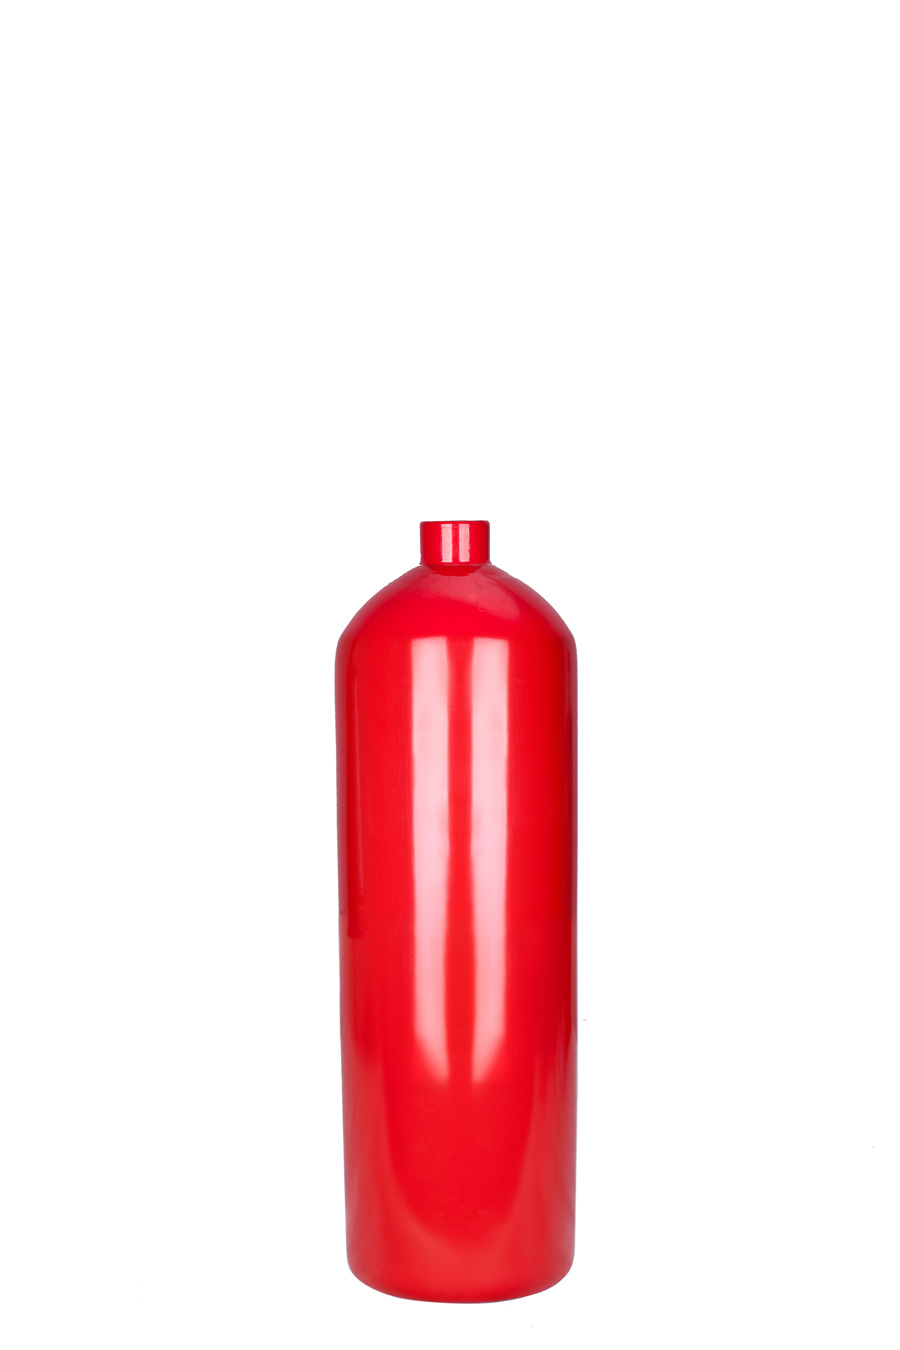 2013 3kg CO2 Fire Extinguisher